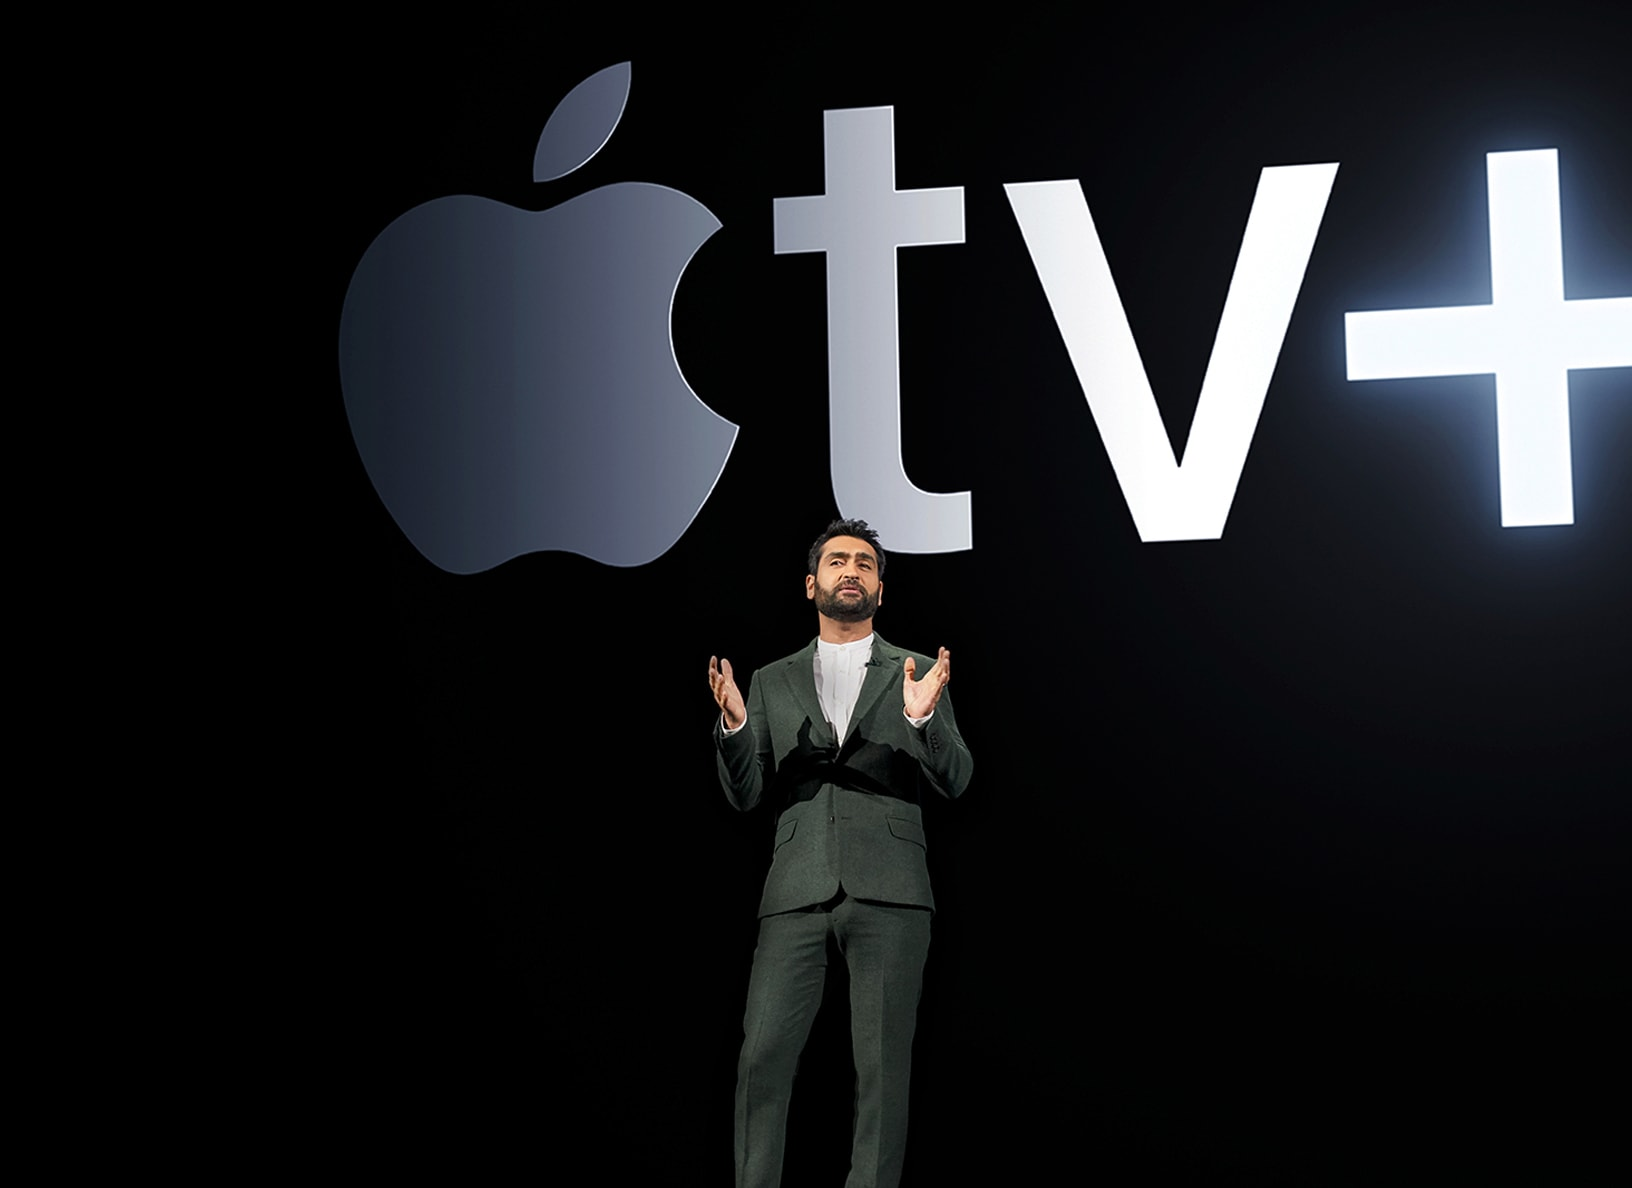 Little America writer and executive producer Kumail Nanjiani shares his story at the Apple March 2019 event.